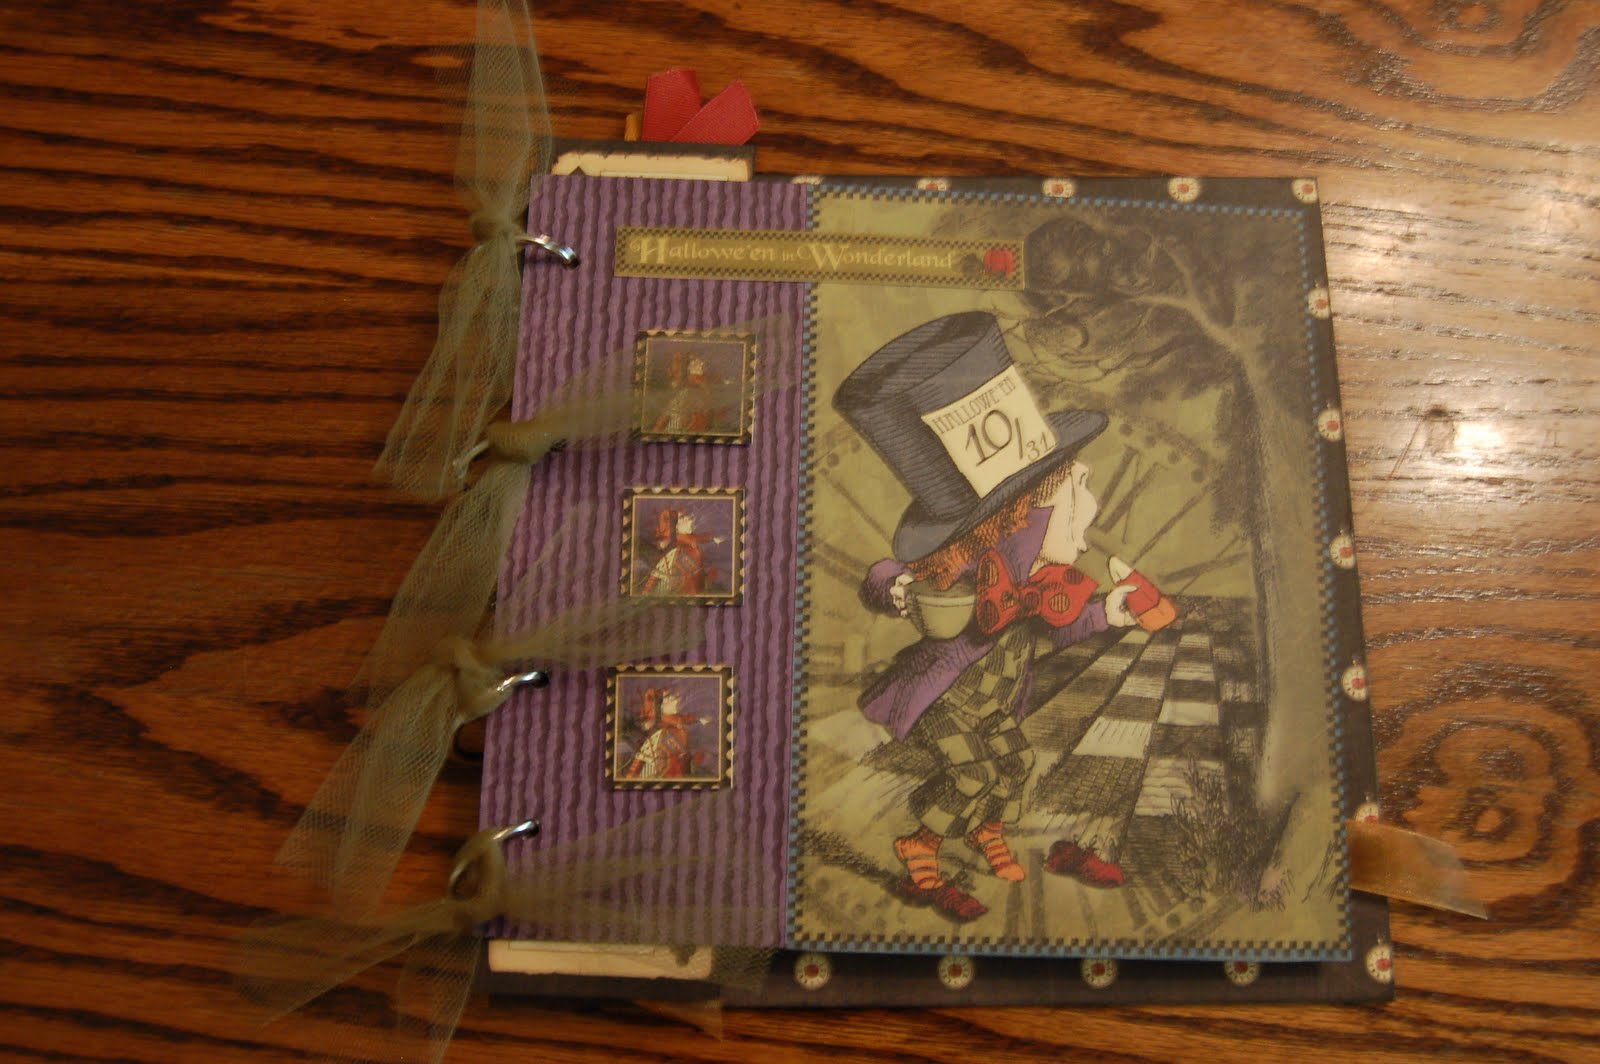 My Life In Haysville Halloween In Wonderland By Graphic 45 And